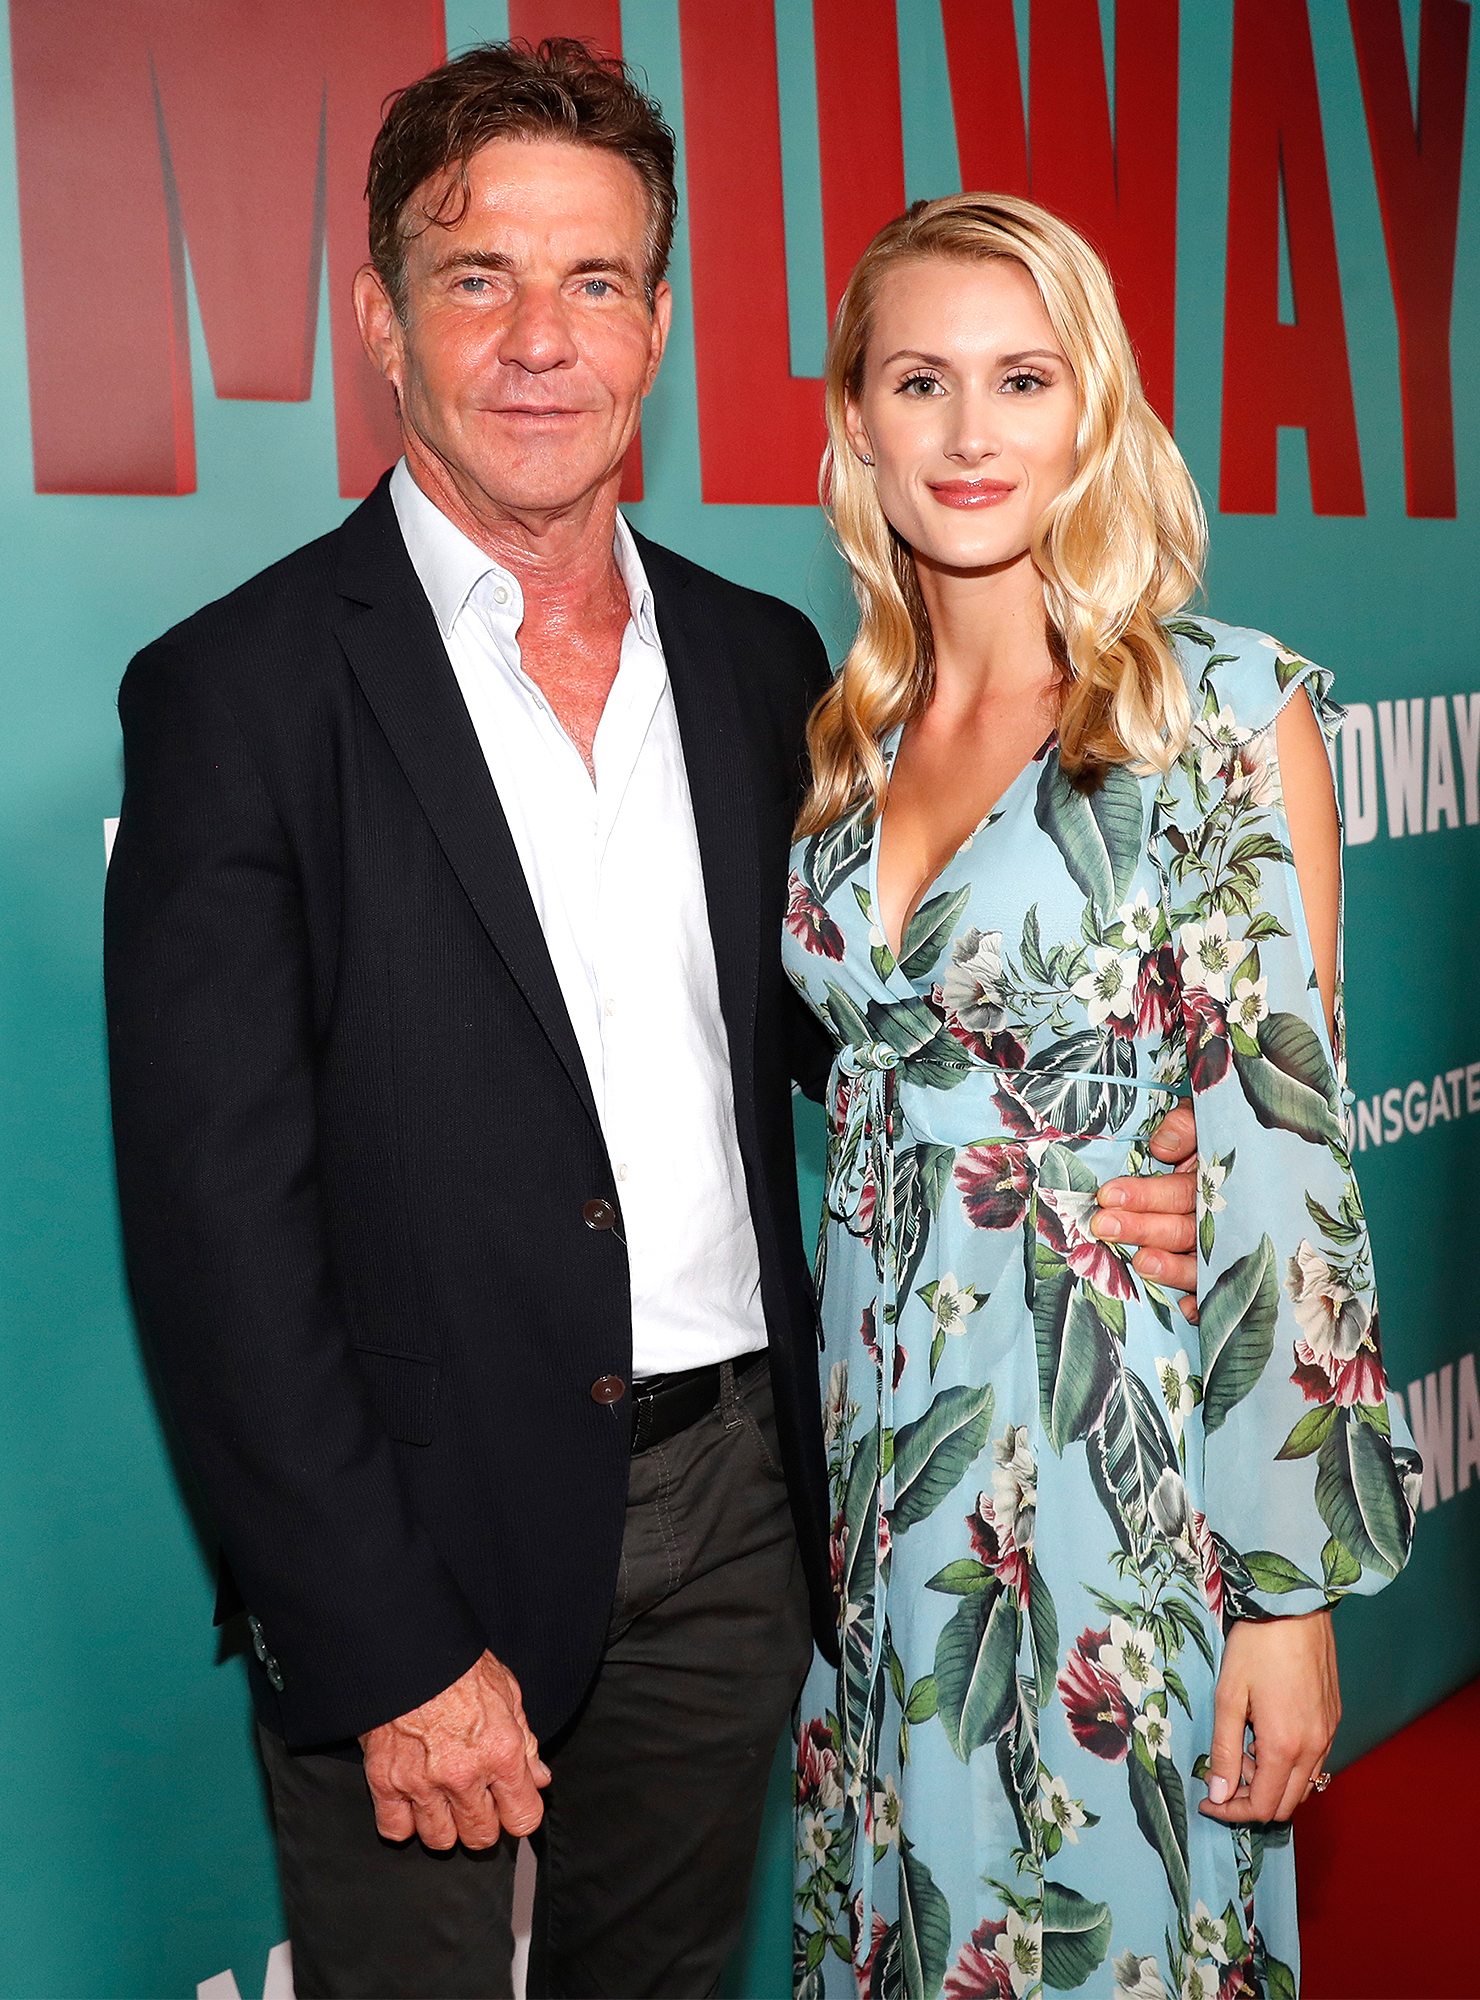 Dennis Quaid and fiancee Laura Savoie